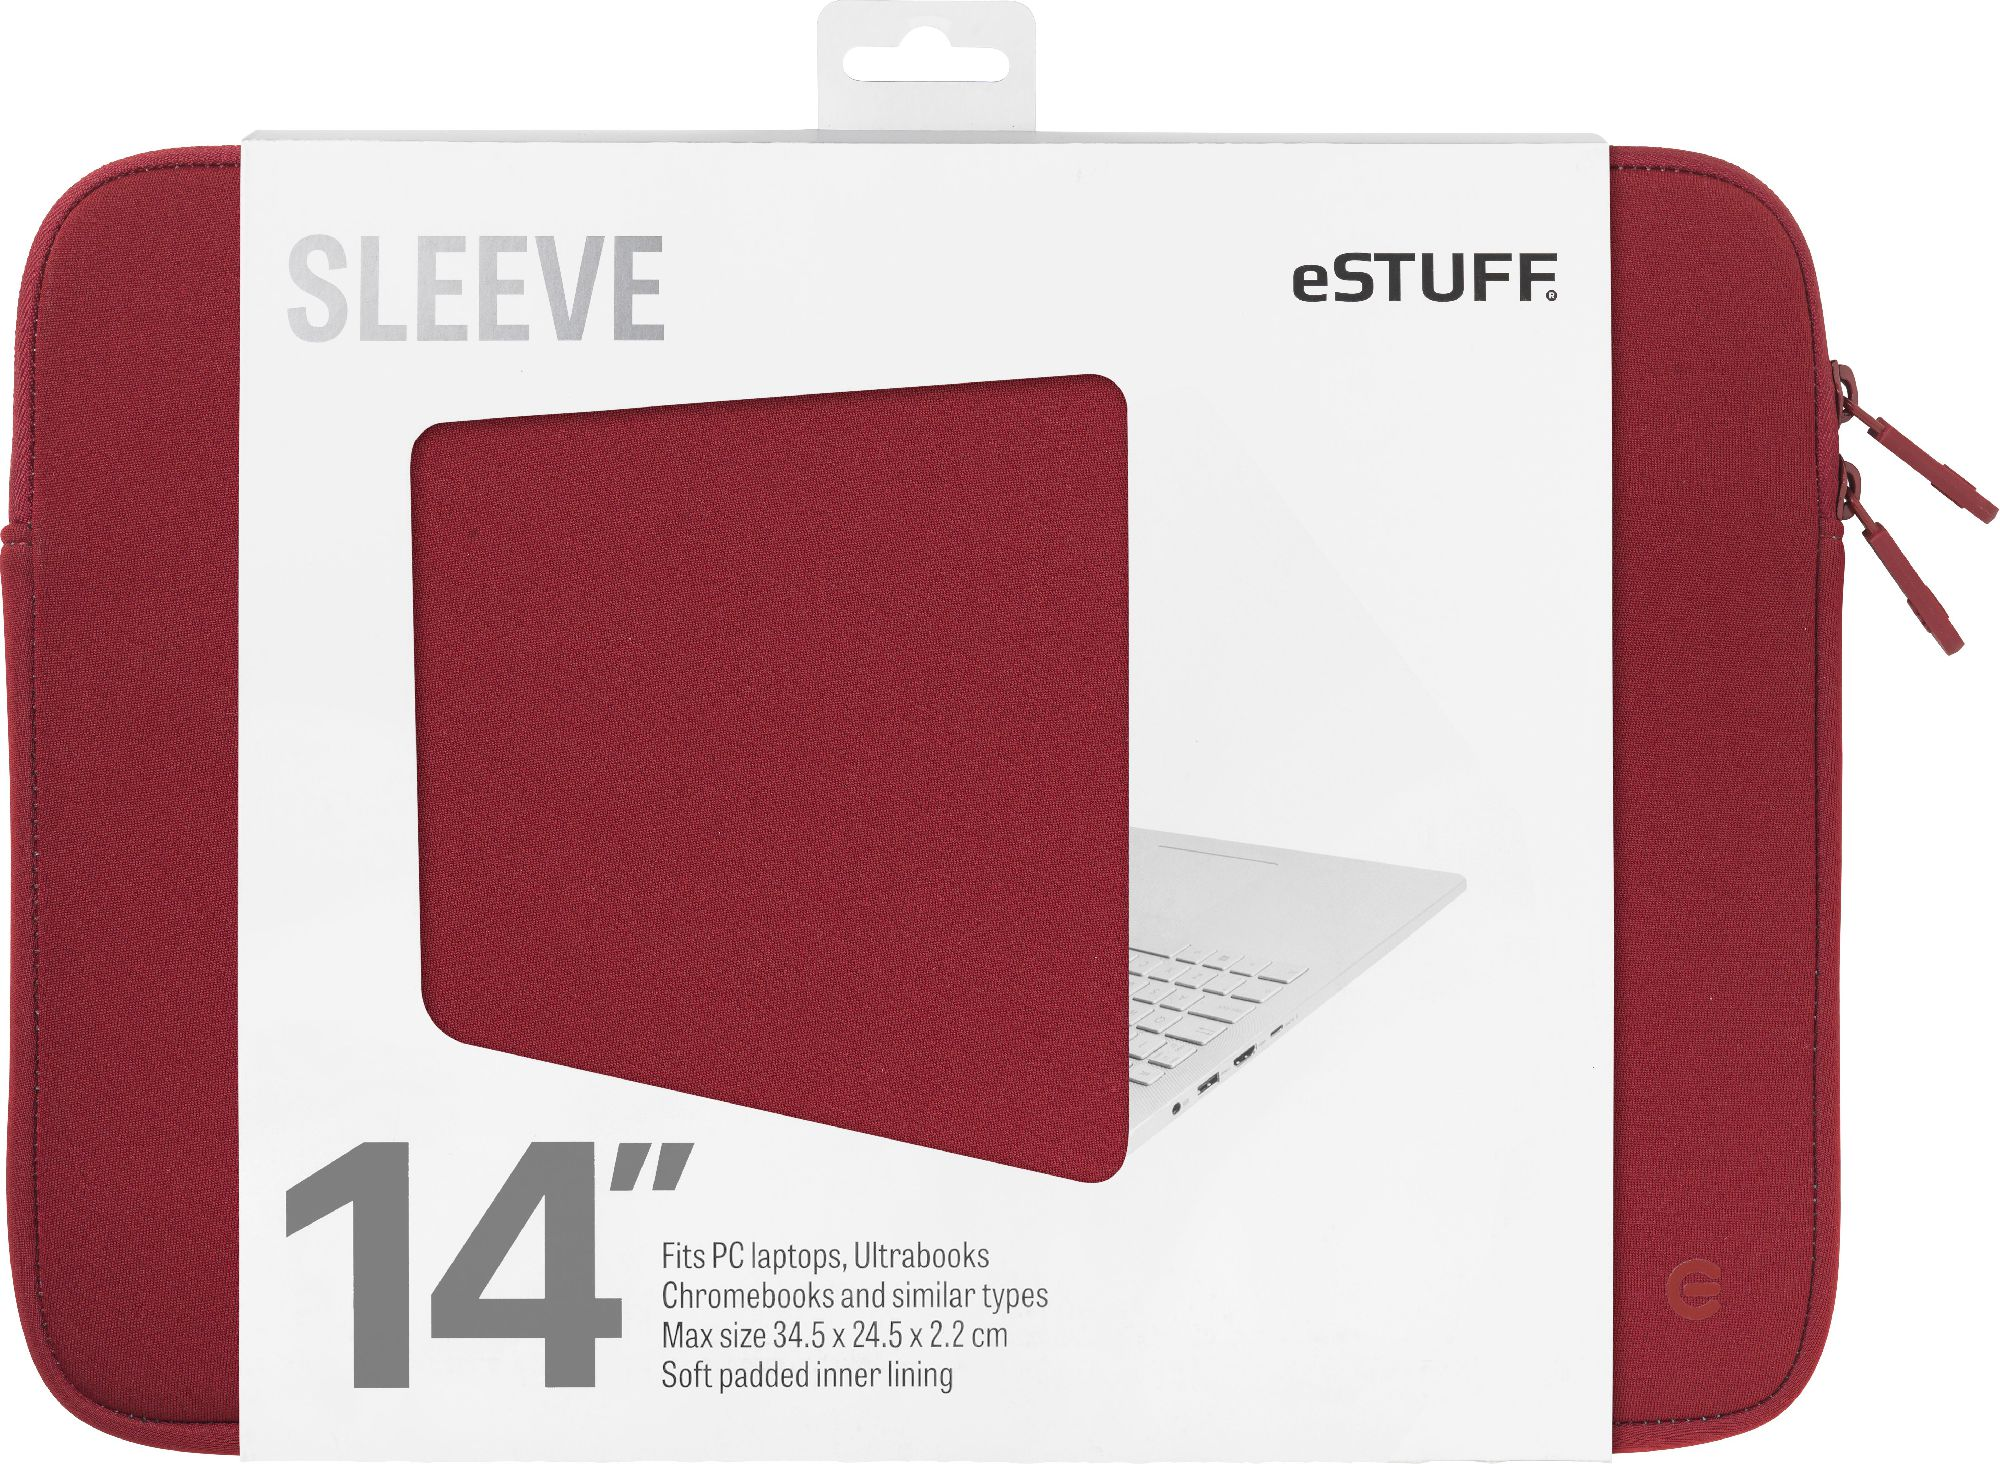 eSTUFF 14'' Sleeve - Fits PC Laptops Ultrabooks, Chromebooks and BLUE ESTUFF portatīvo datoru soma, apvalks